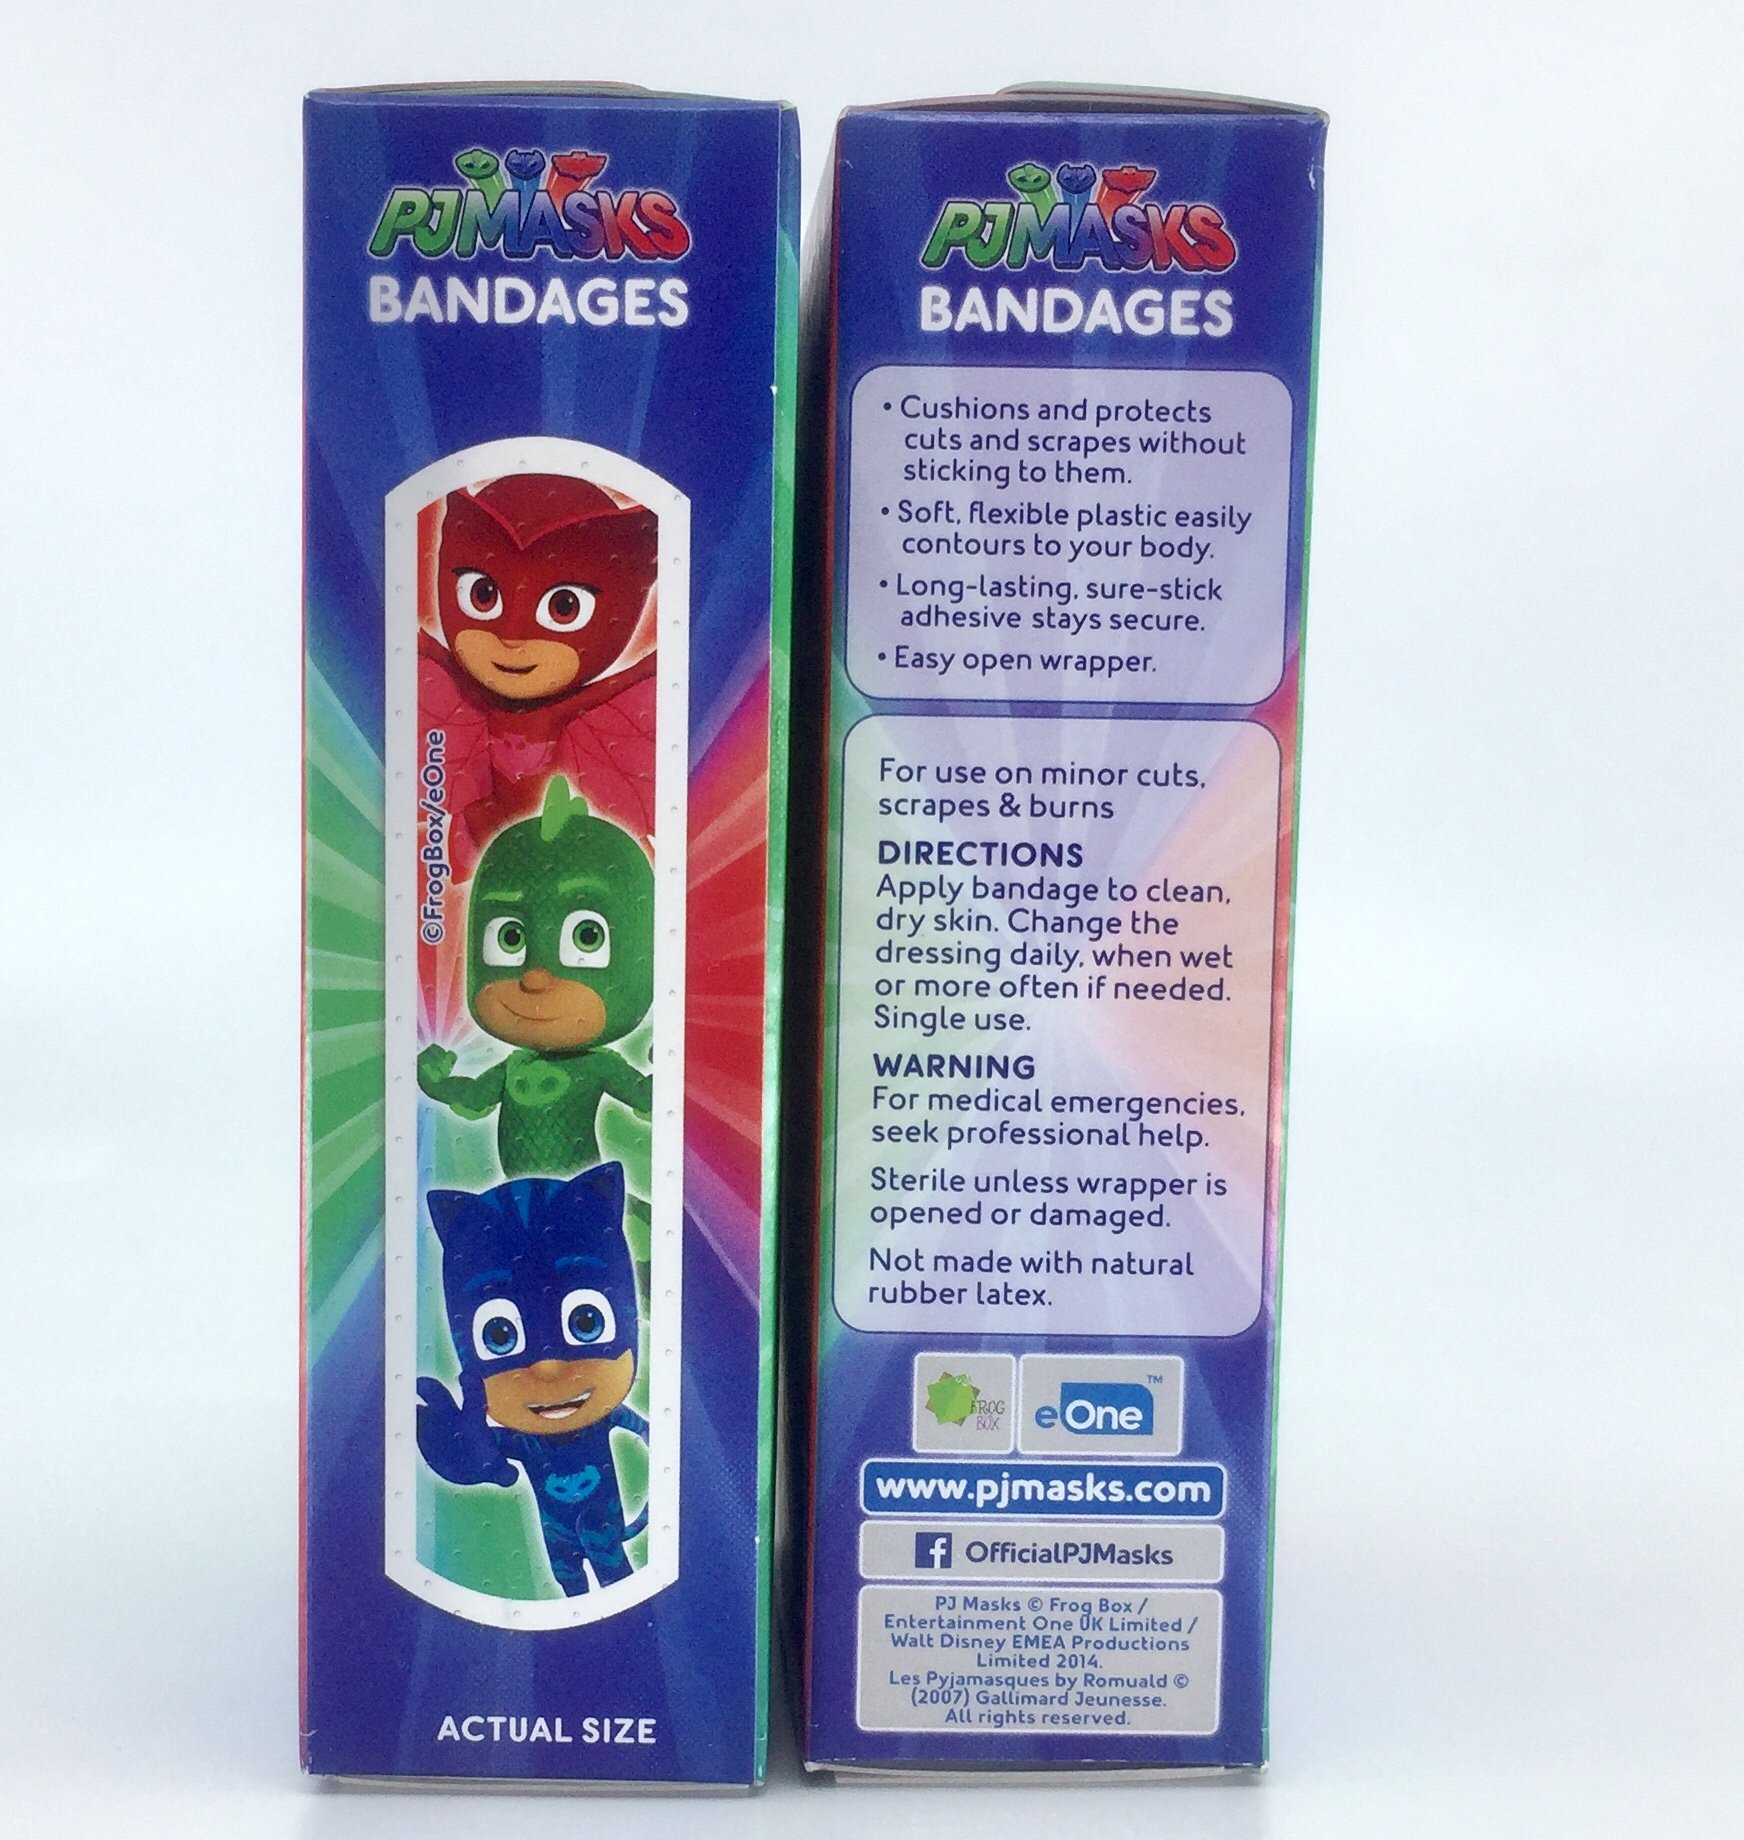 PJMASKS Latex Free Adhesive Anti- Bacterial Bandages Bandaids 3 Pack of Variety Comics Designs 20 per Box - 60 Bandages Total Plus a Bonus Free Collection of Fun Kids Jokes by Zee (3+ Items)